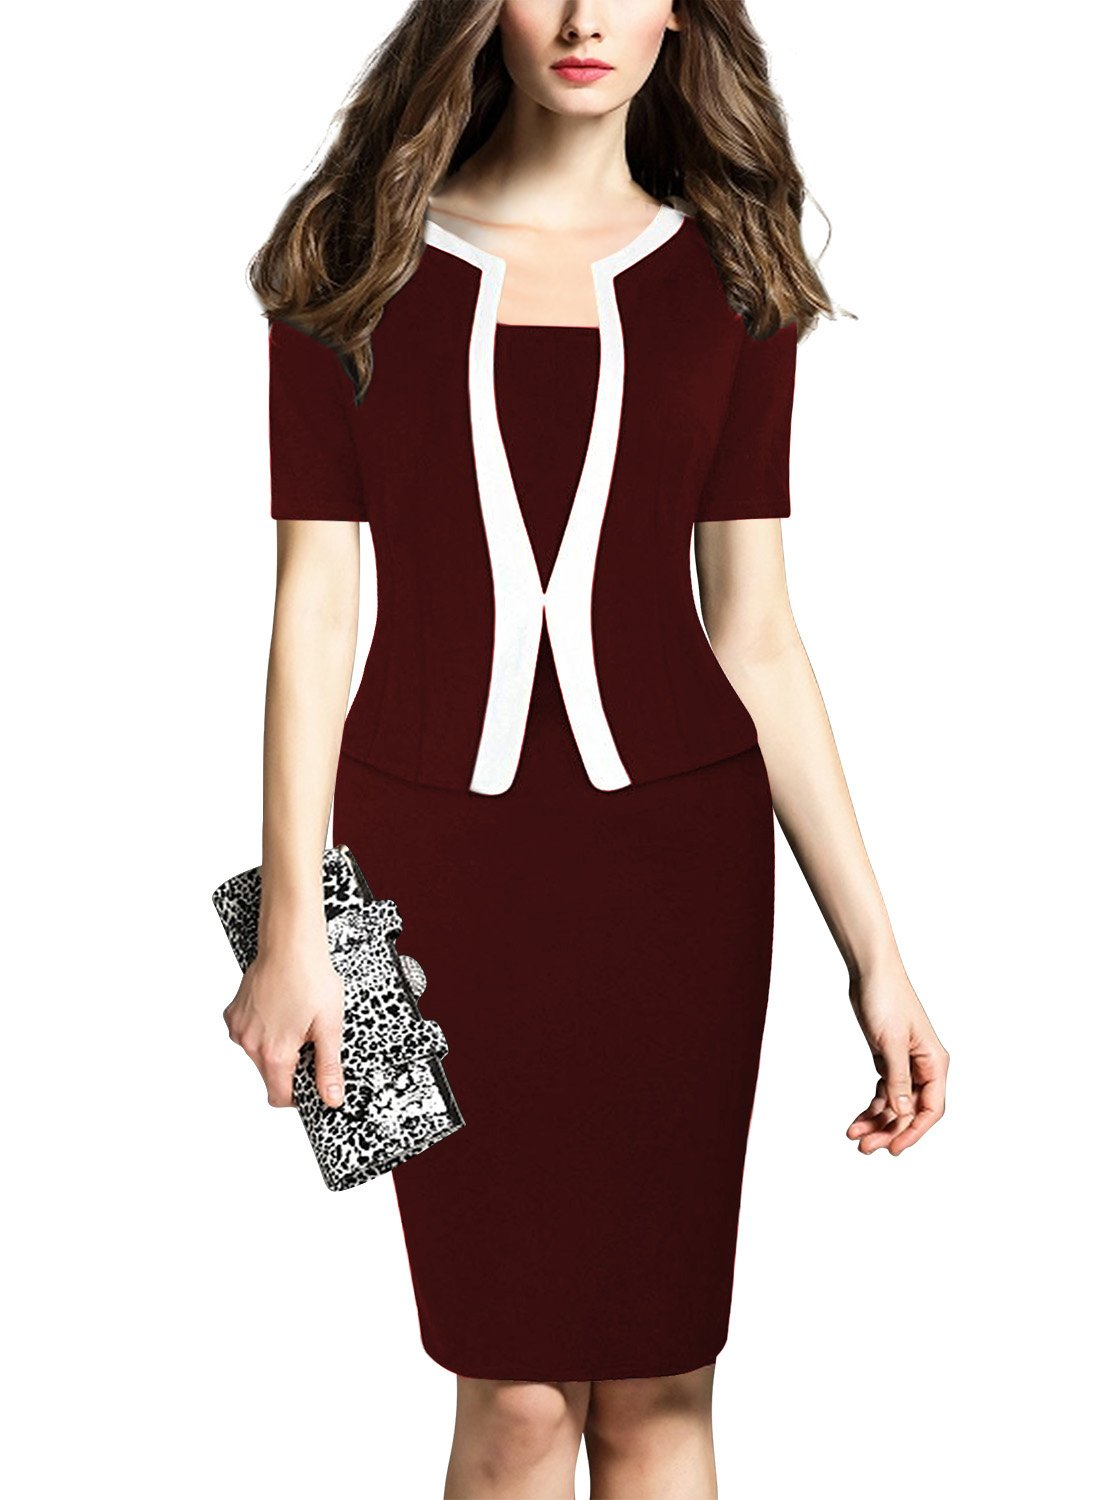 MUSHARE Women's Colorblock Wear to Work Business Party Bodycon One-Piece Dress (Small, Burgundy-Short)